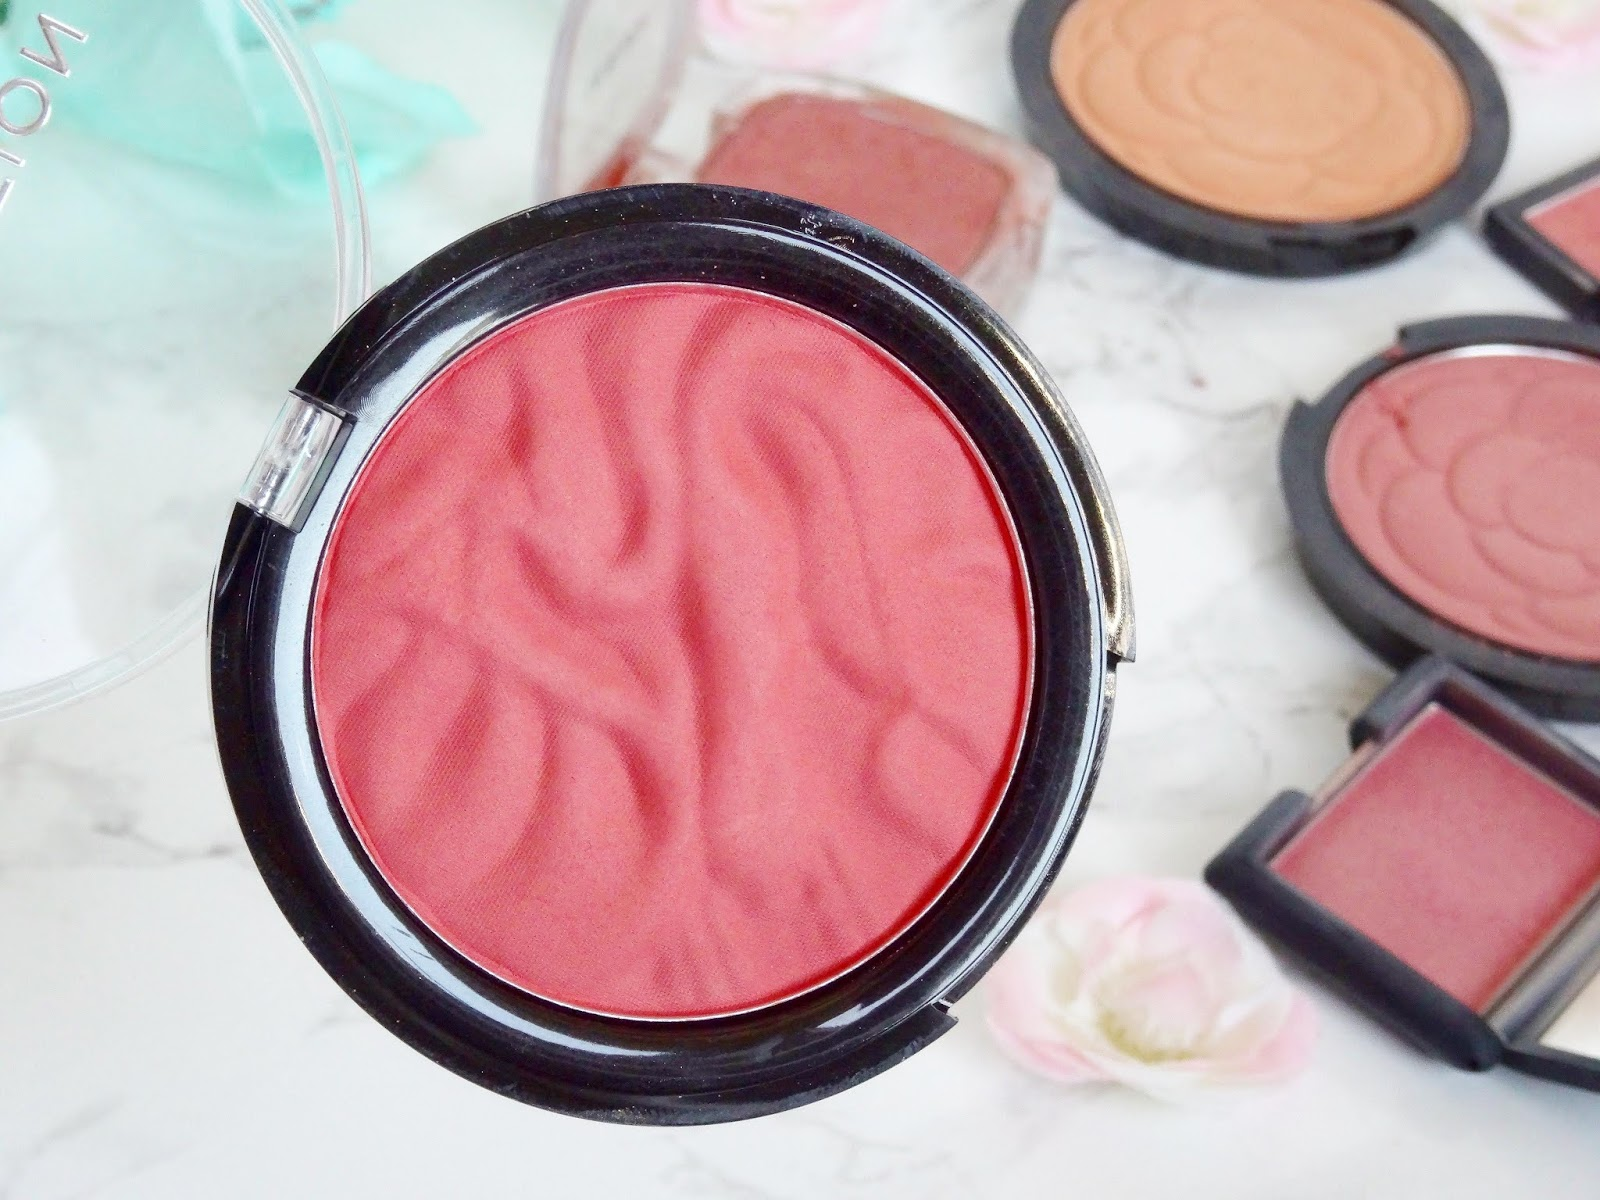 Makeup Revolution Reloaded Blush in Swoon